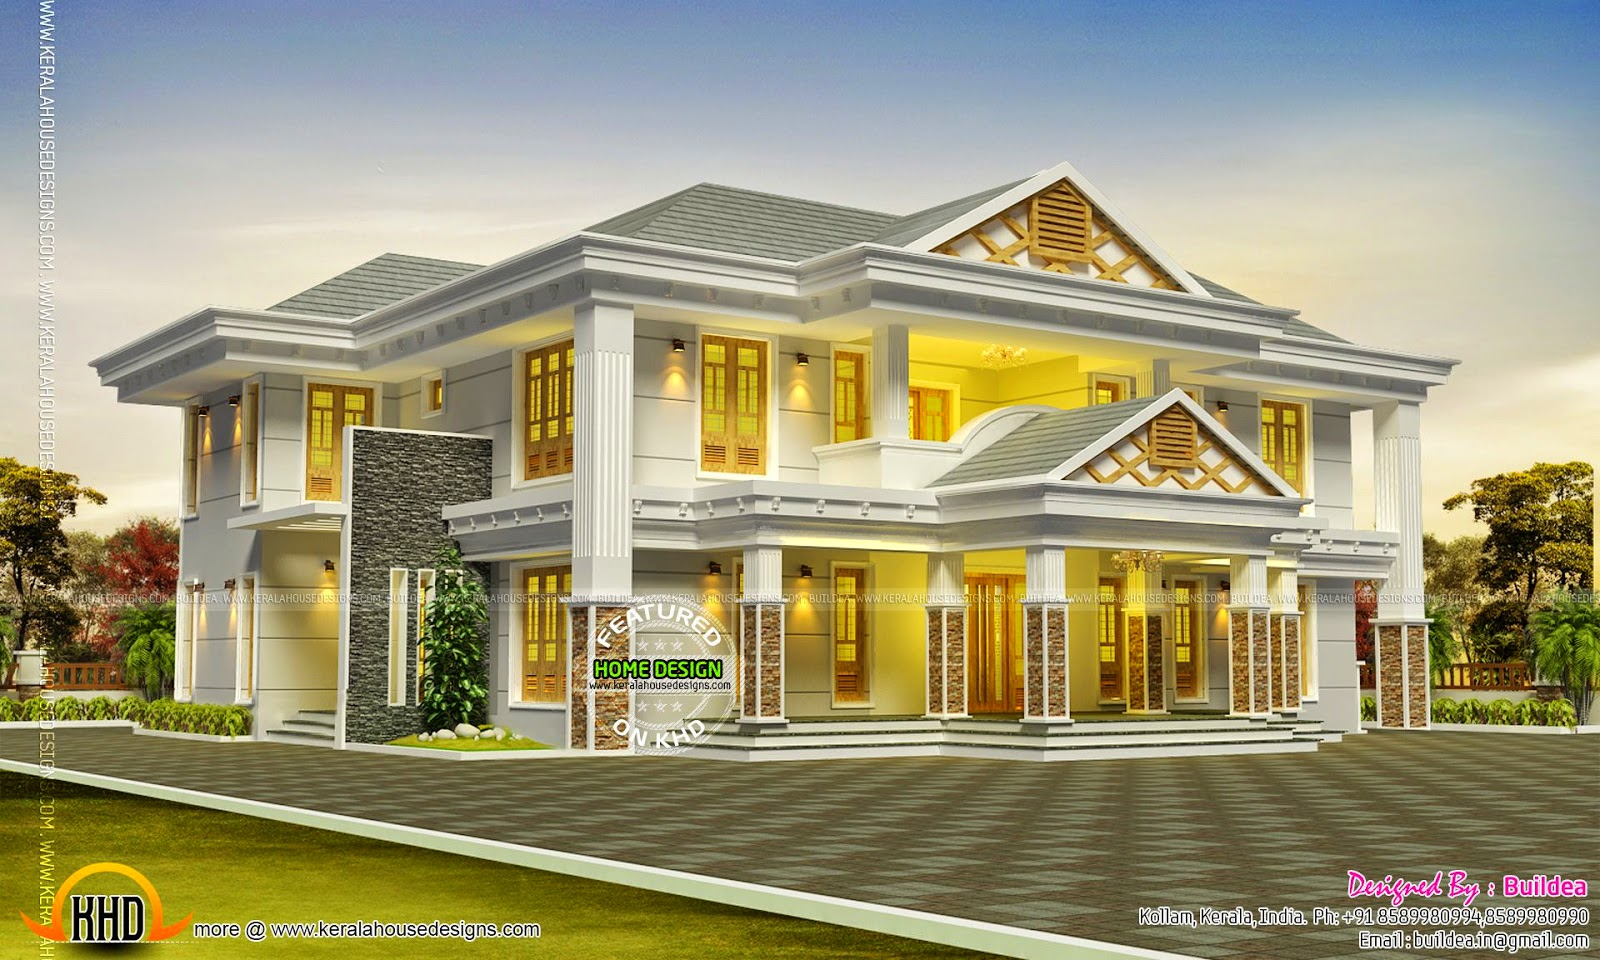 Kerala model luxury house exterior keralahousedesigns for Luxury home models